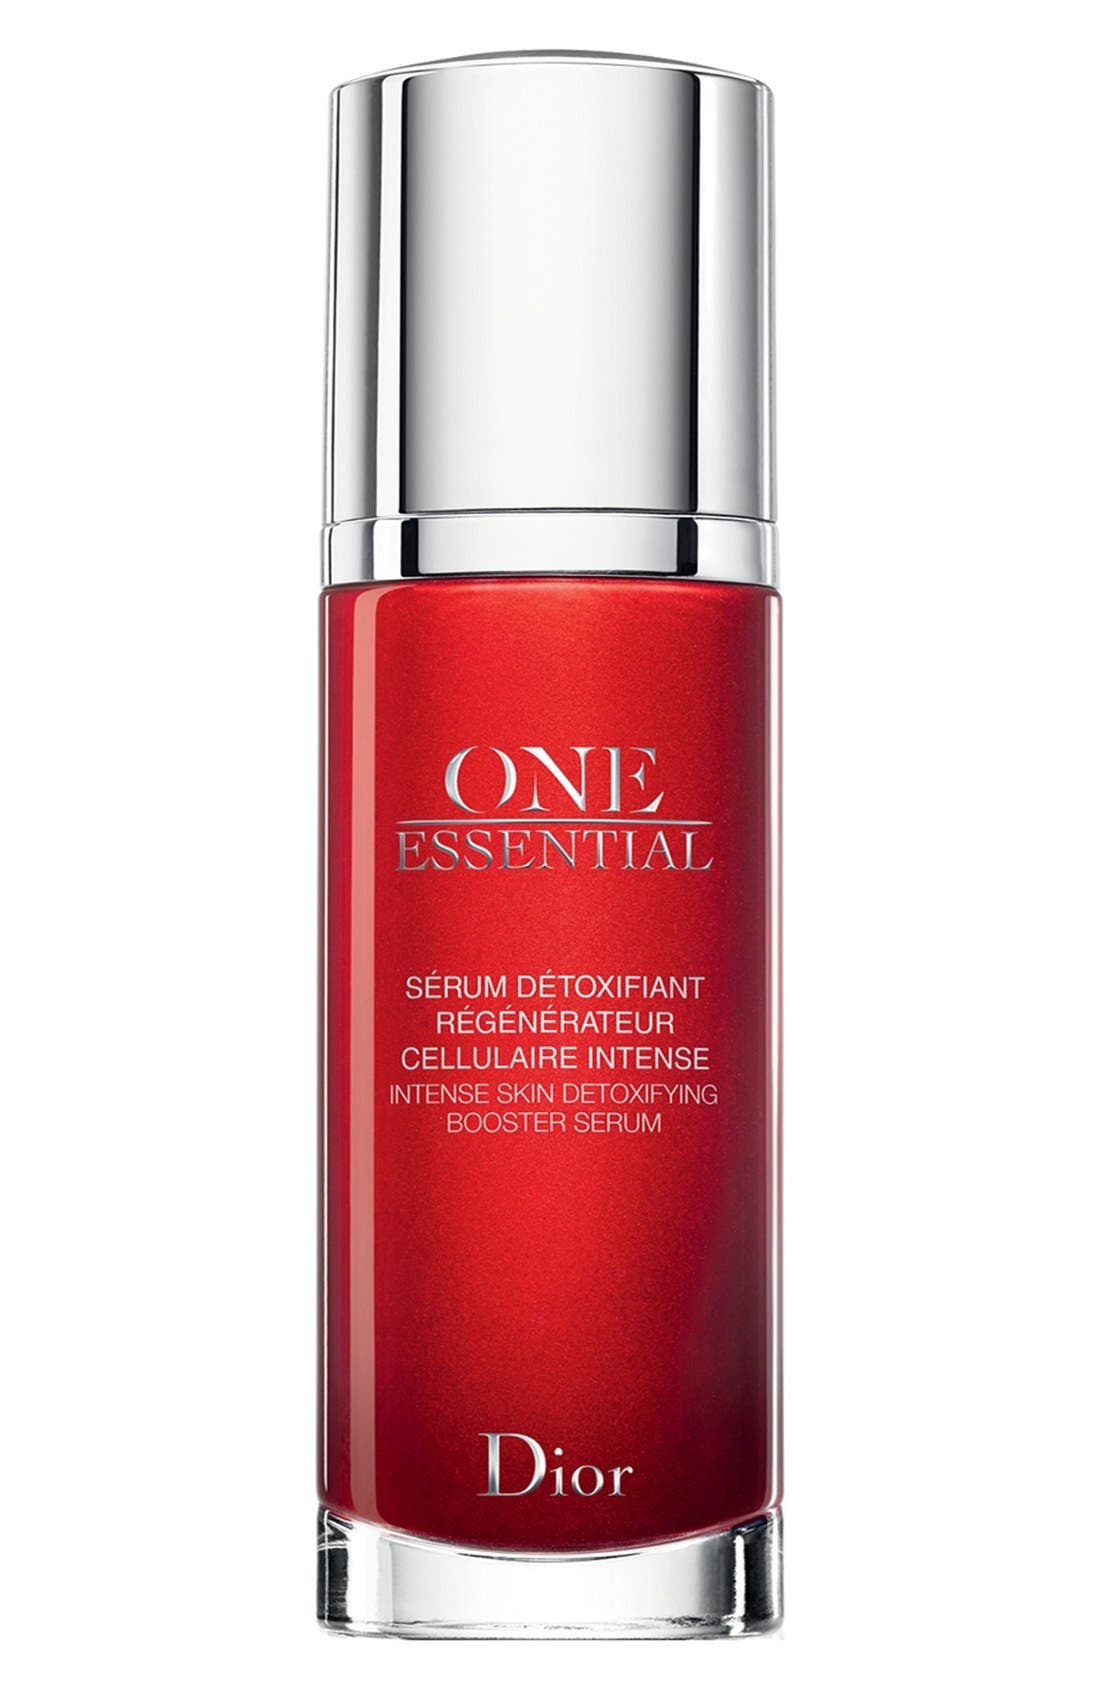 'One Essential' Intense Skin Detoxifying Booster Serum,                             Main thumbnail 1, color,                             000